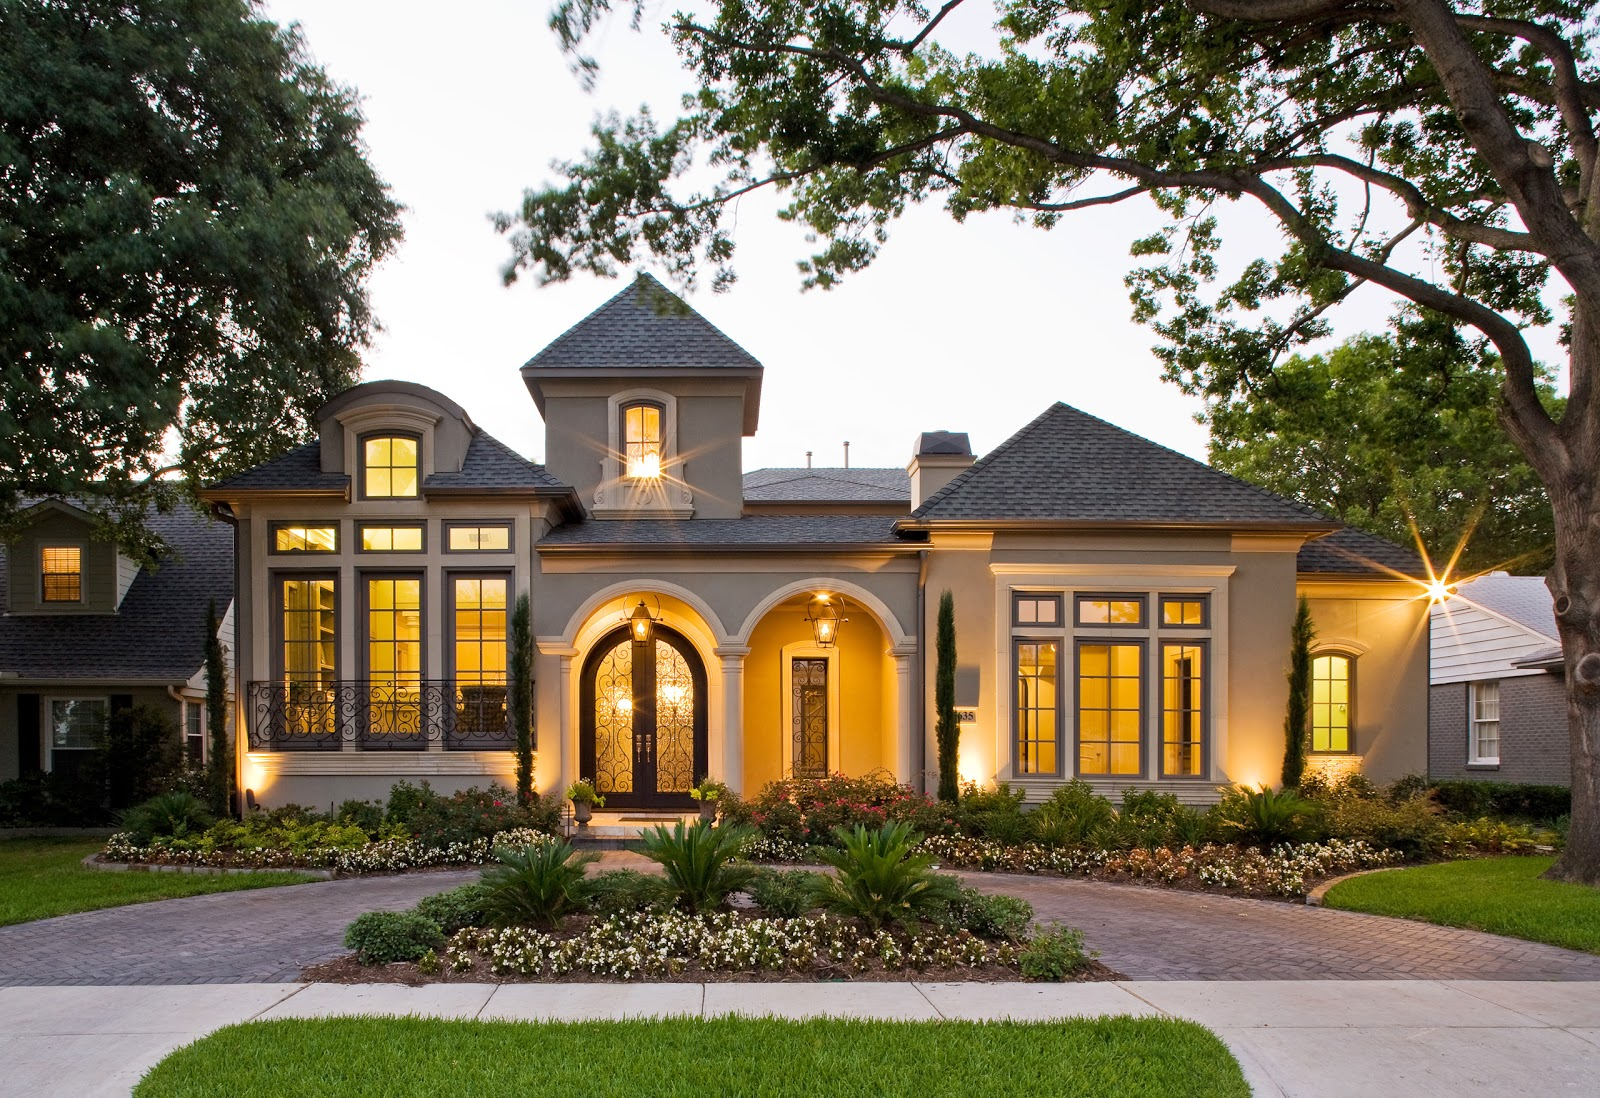 House Design Exterior Home Design Ideas Pictures Exterior Paint House Pictures